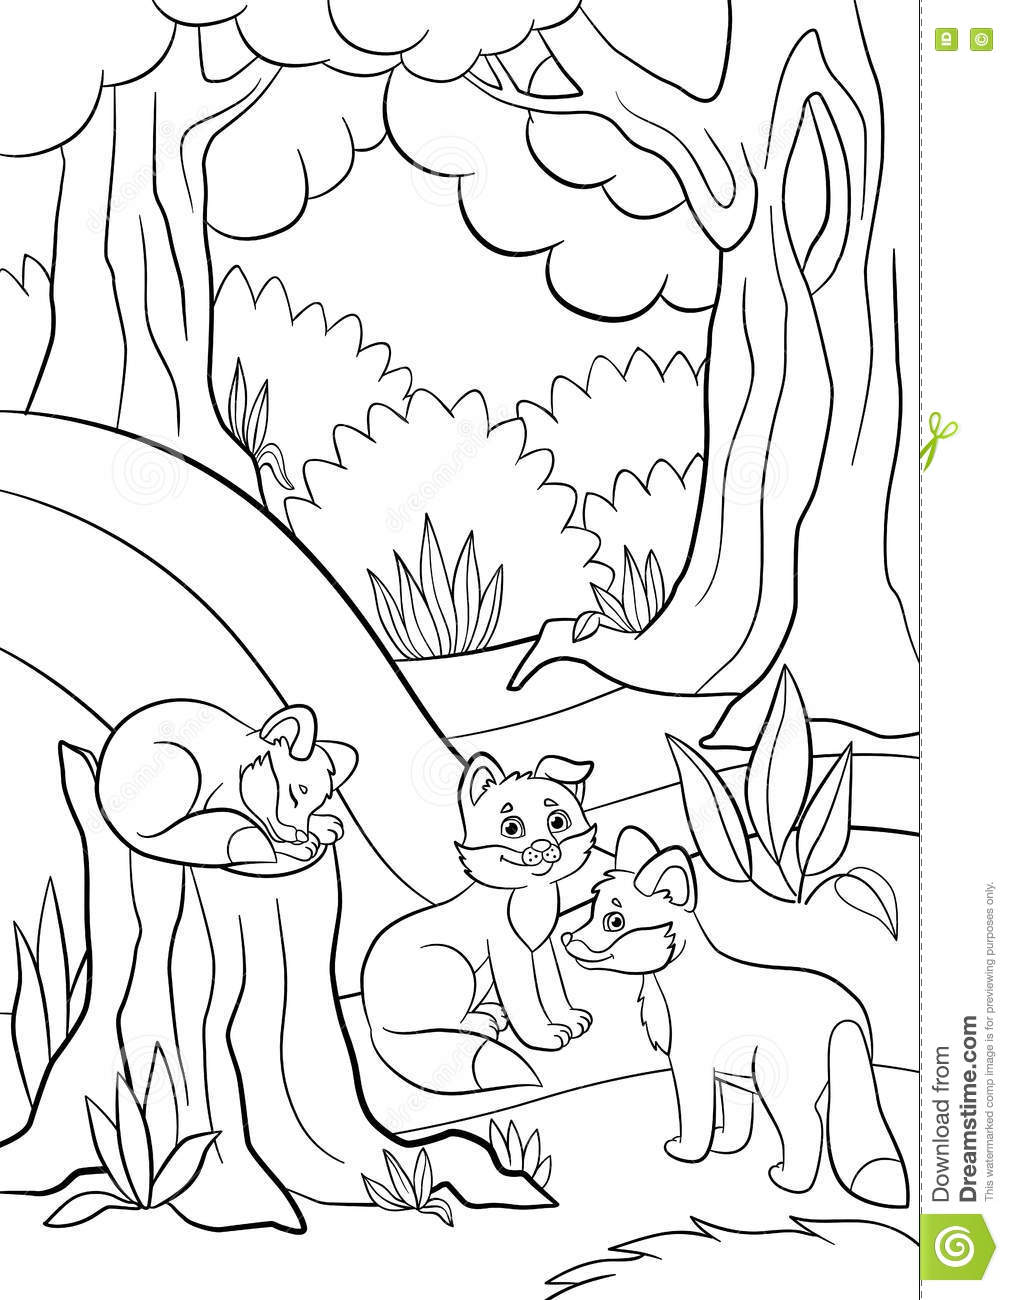 rainforest animal coloring pages free printable rainforest coloring pages coloring home rainforest coloring pages animal